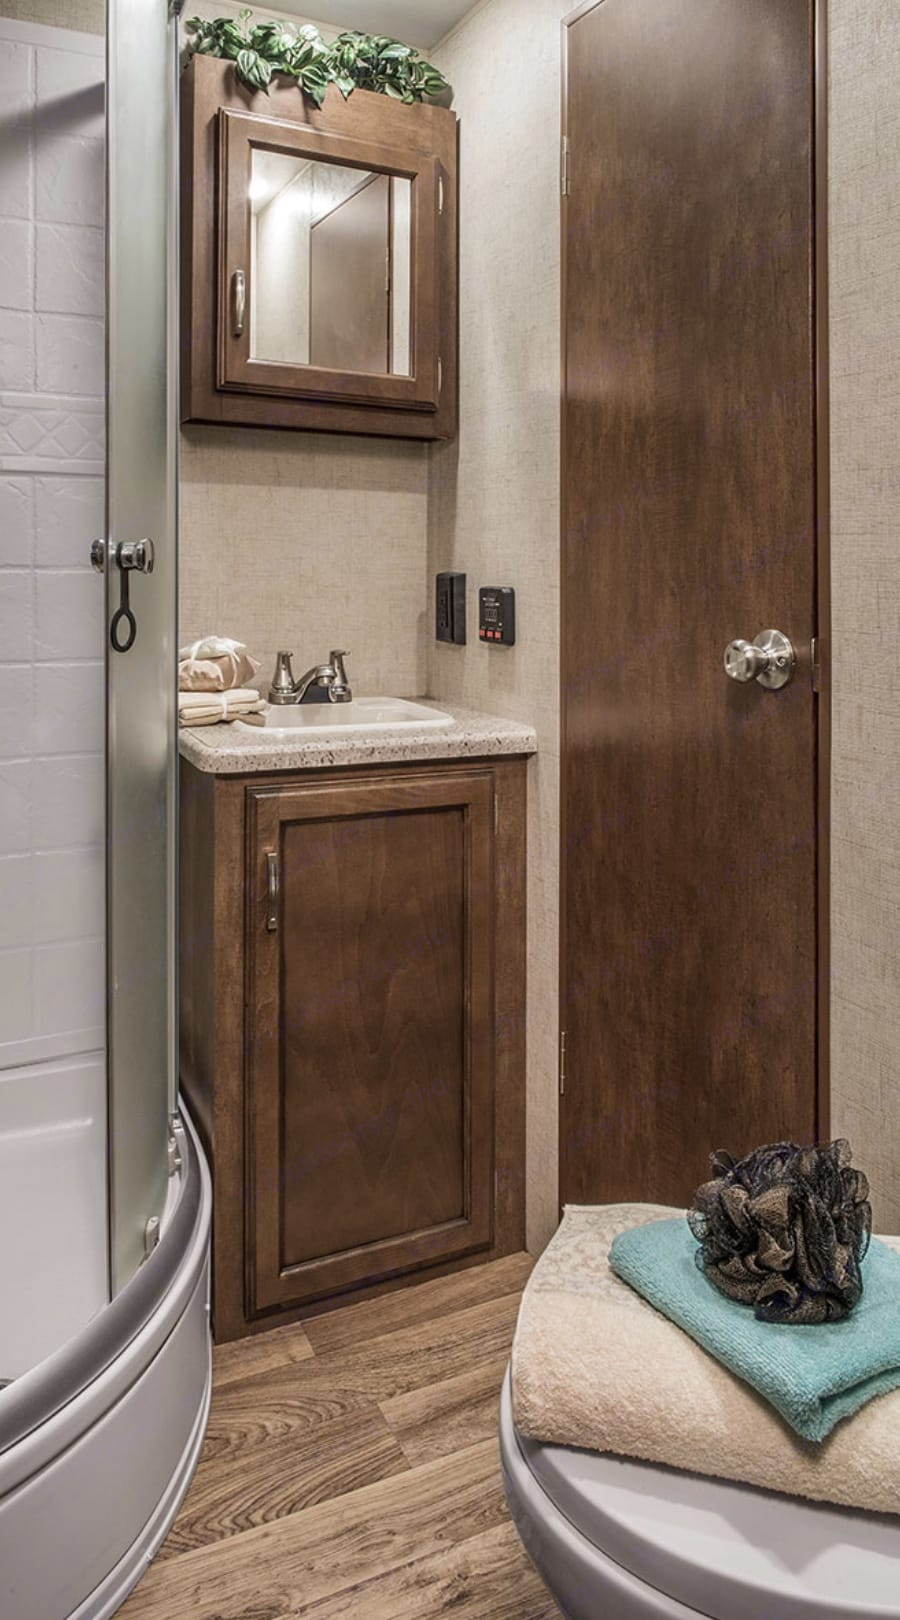 Shower and bathroom off of master bedroom with queen bed at front of trailer . Venture Rv Sporttrek 2017